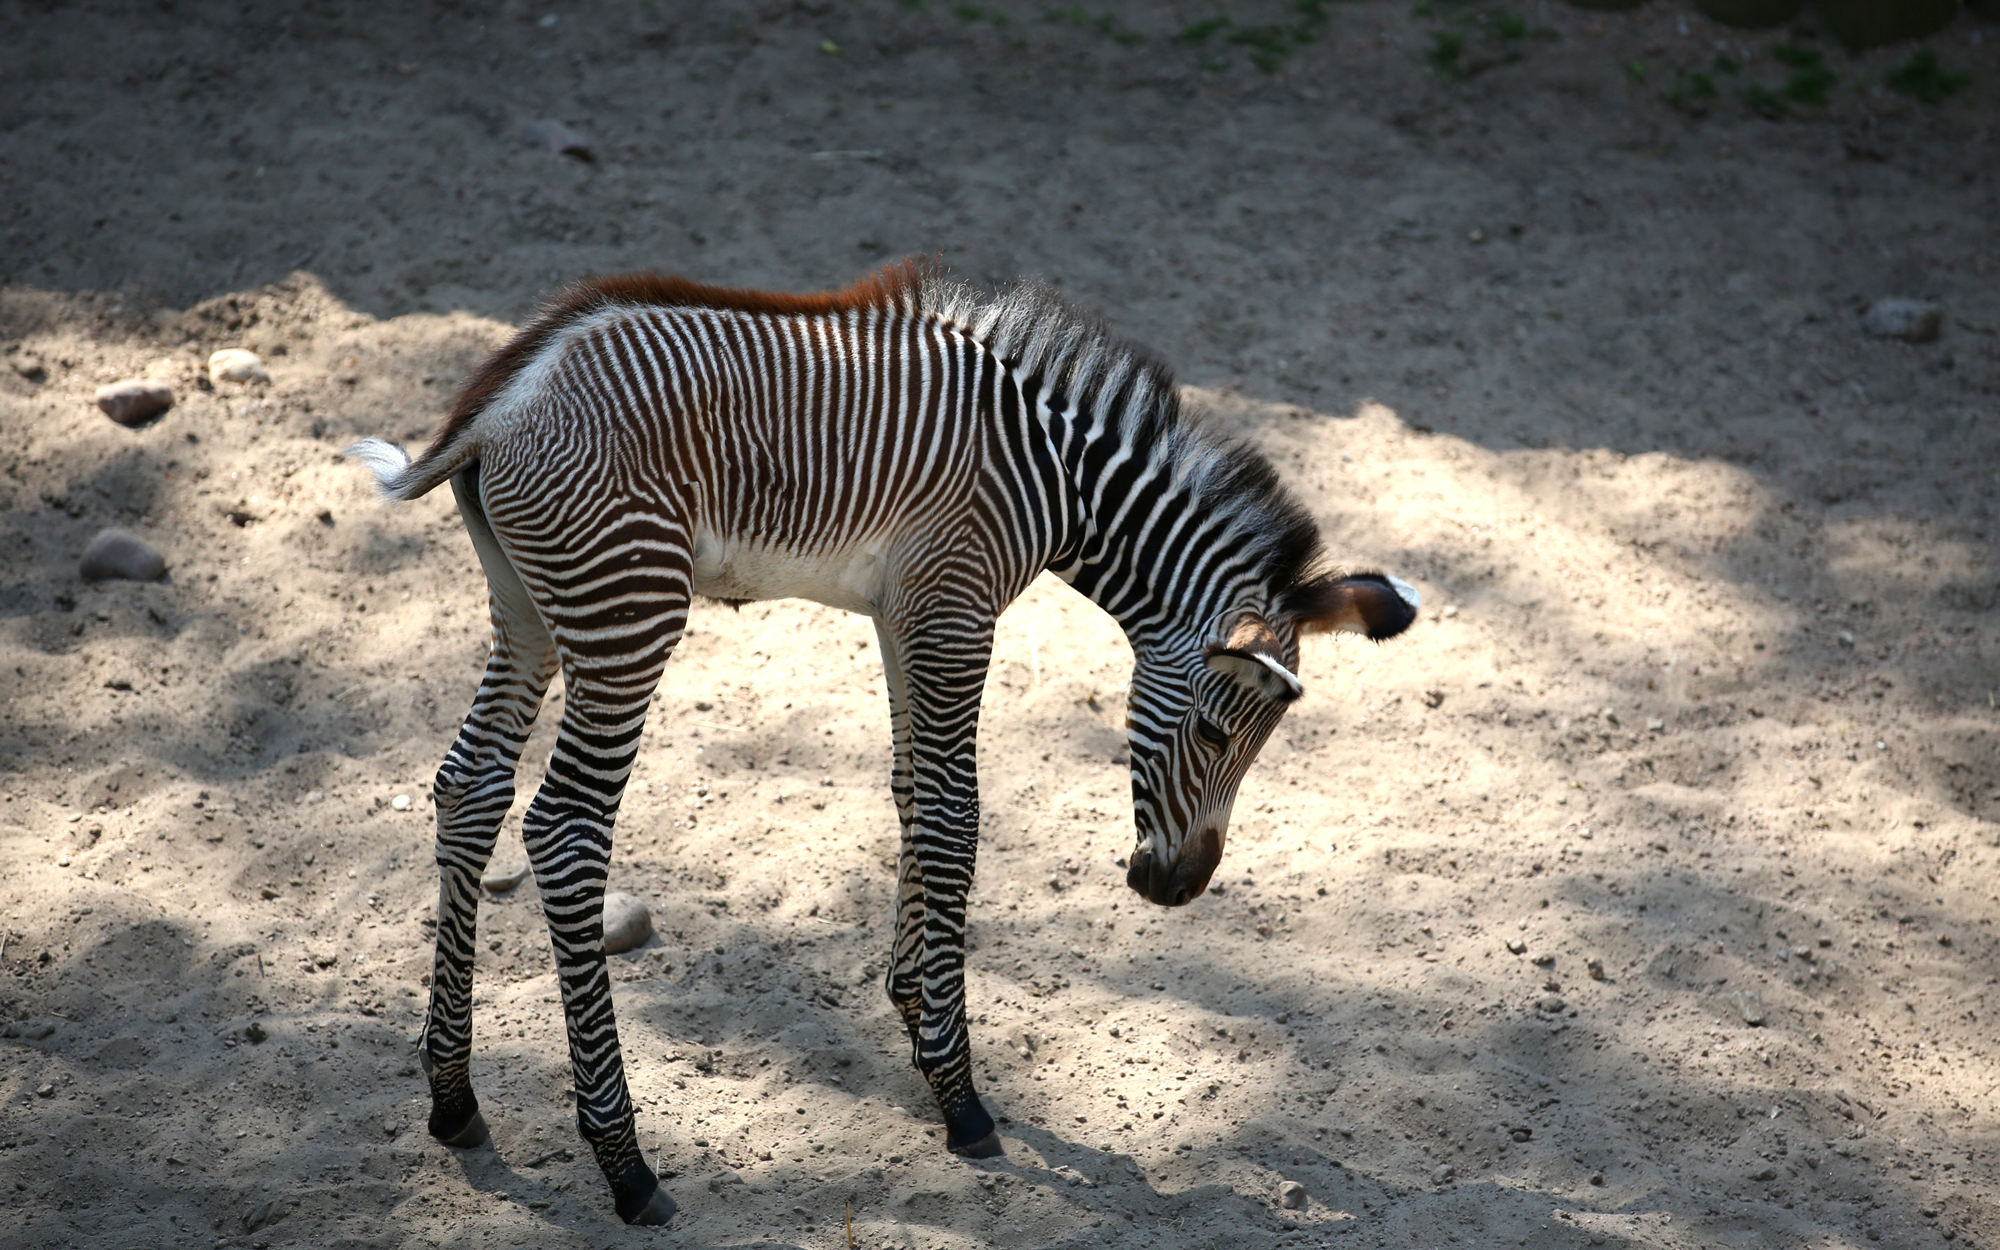 A Baby Zebra at the Lincoln Park Zoo